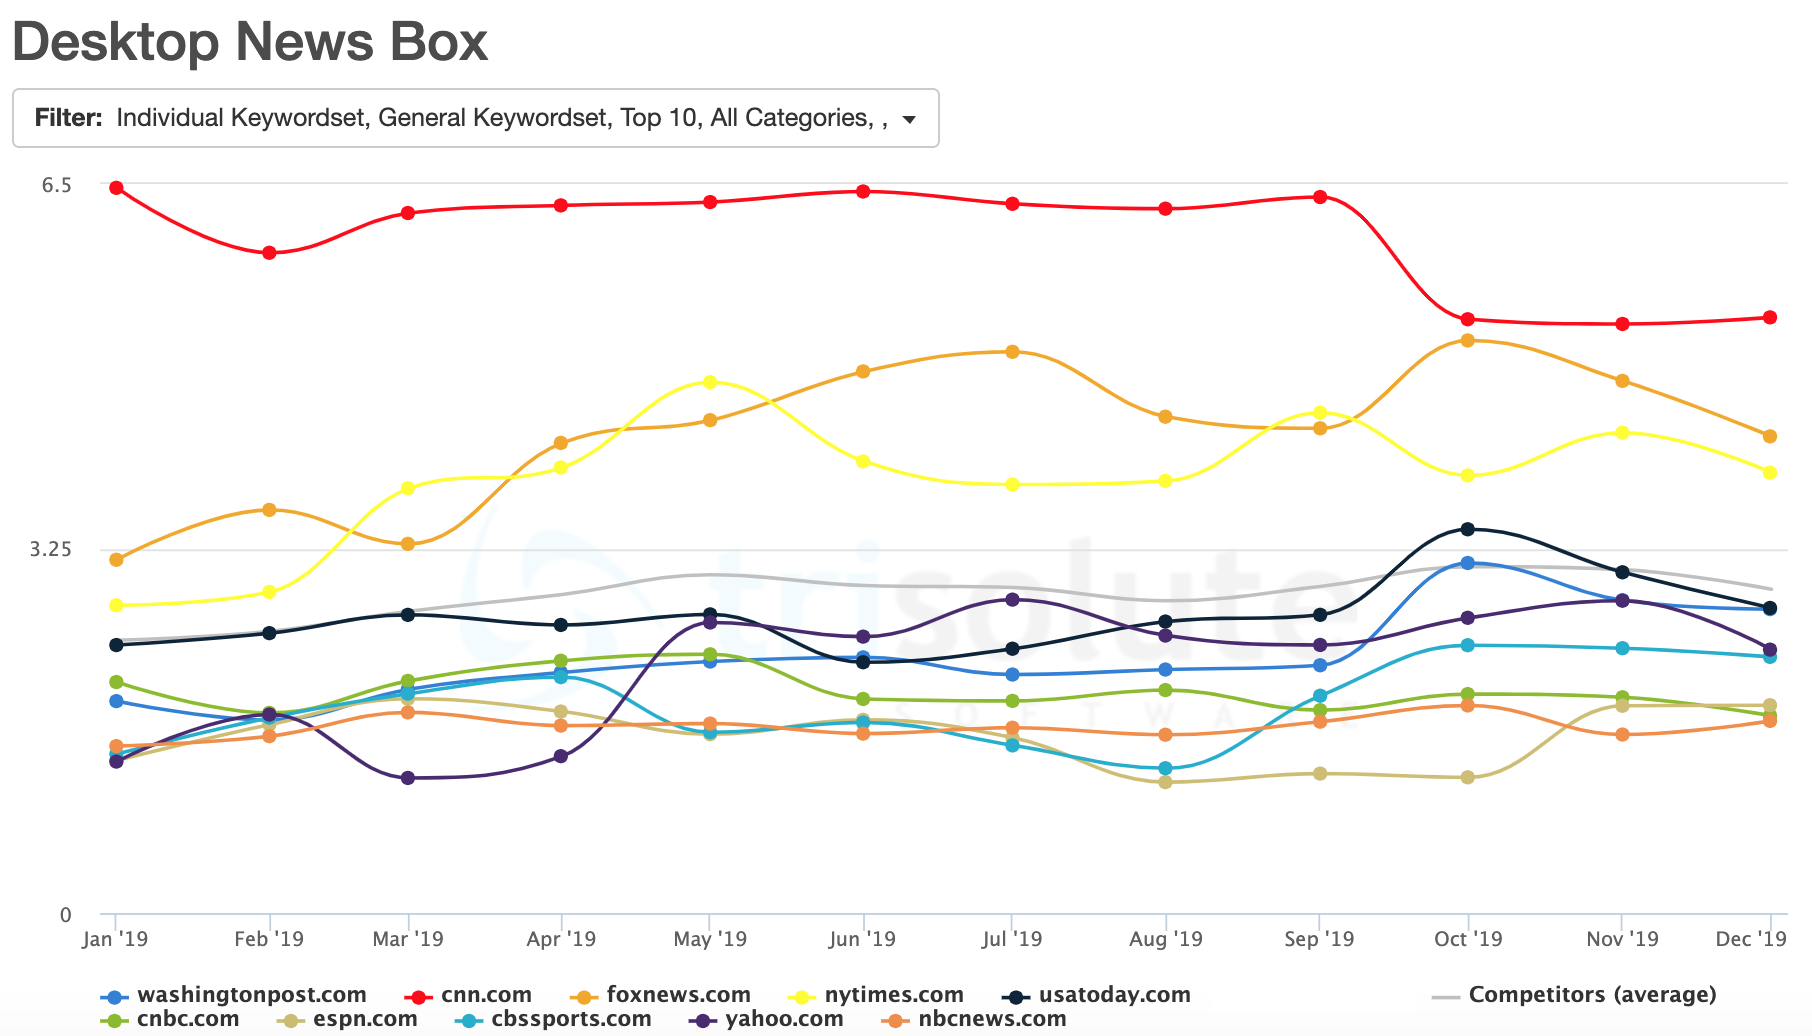 Top 10 most visible Publishers in 2019 in the Desktop News Box.